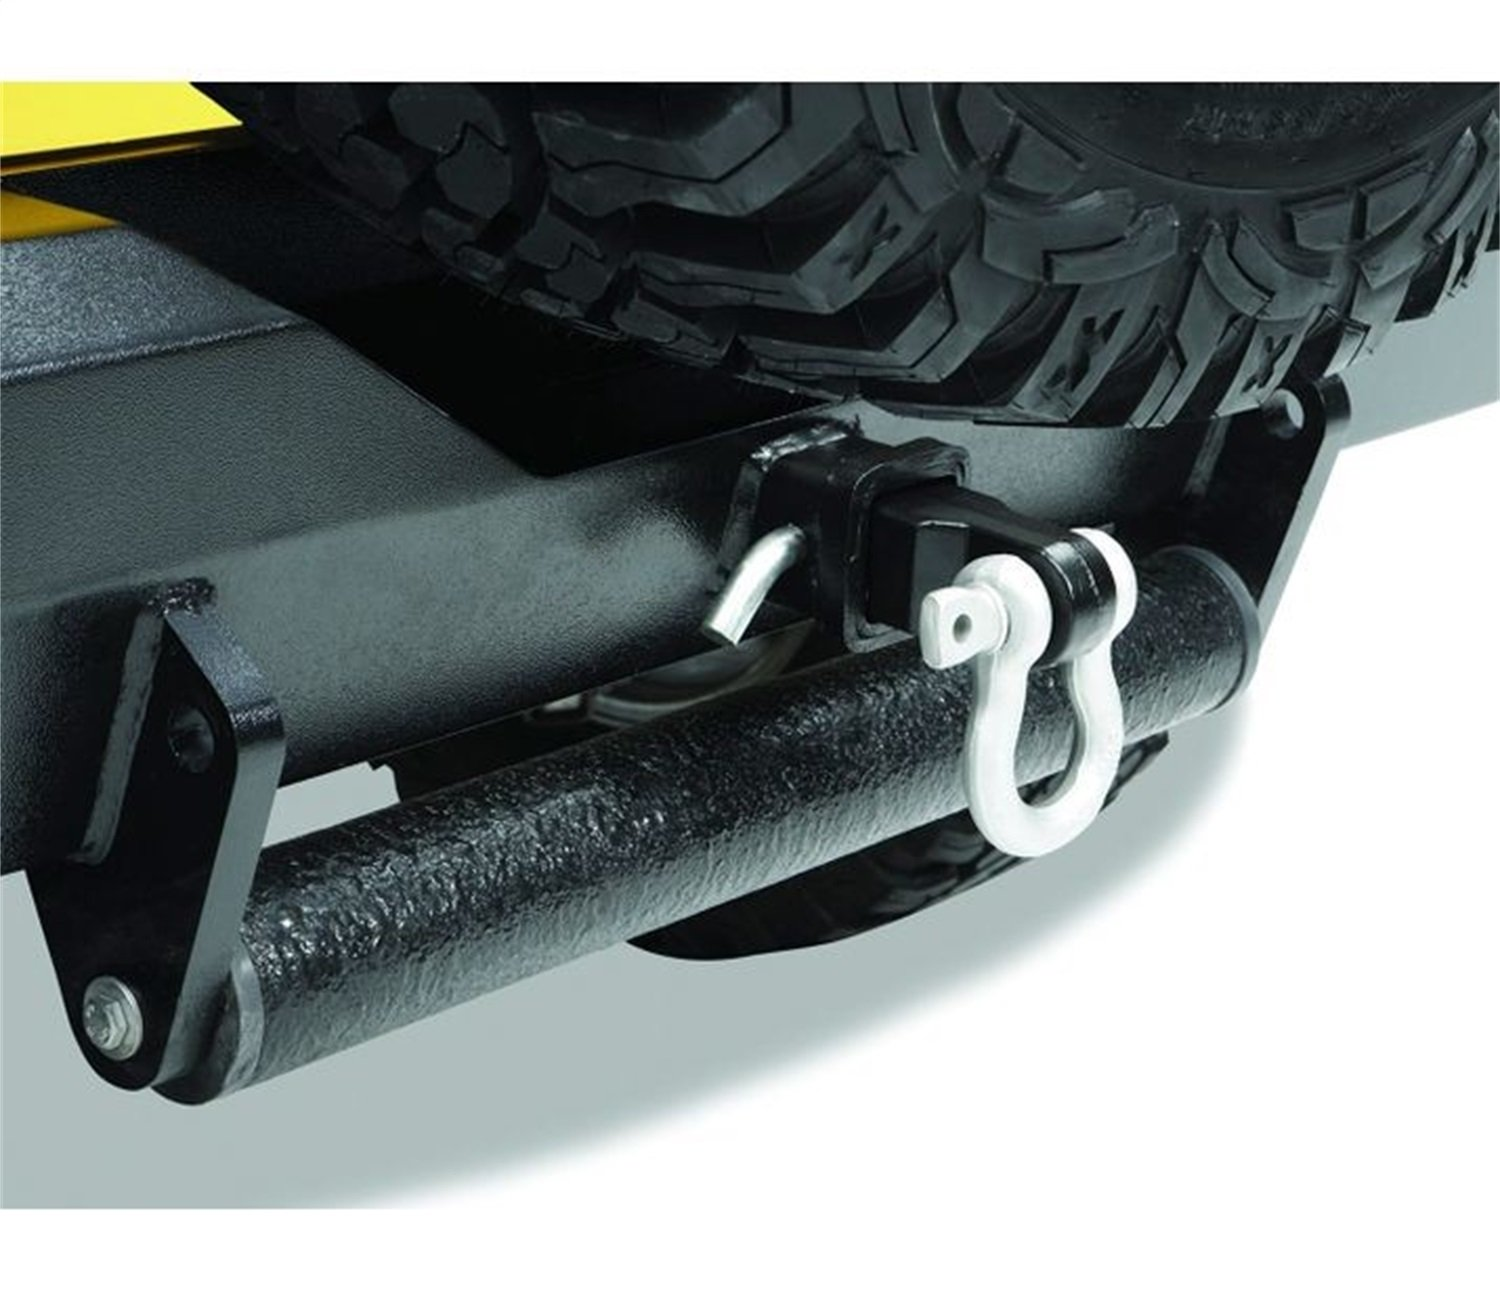 Bestop 42922-01 HighRock 4X4 2' Receiver Recovery Hitch Insert with D-Ring Shackle